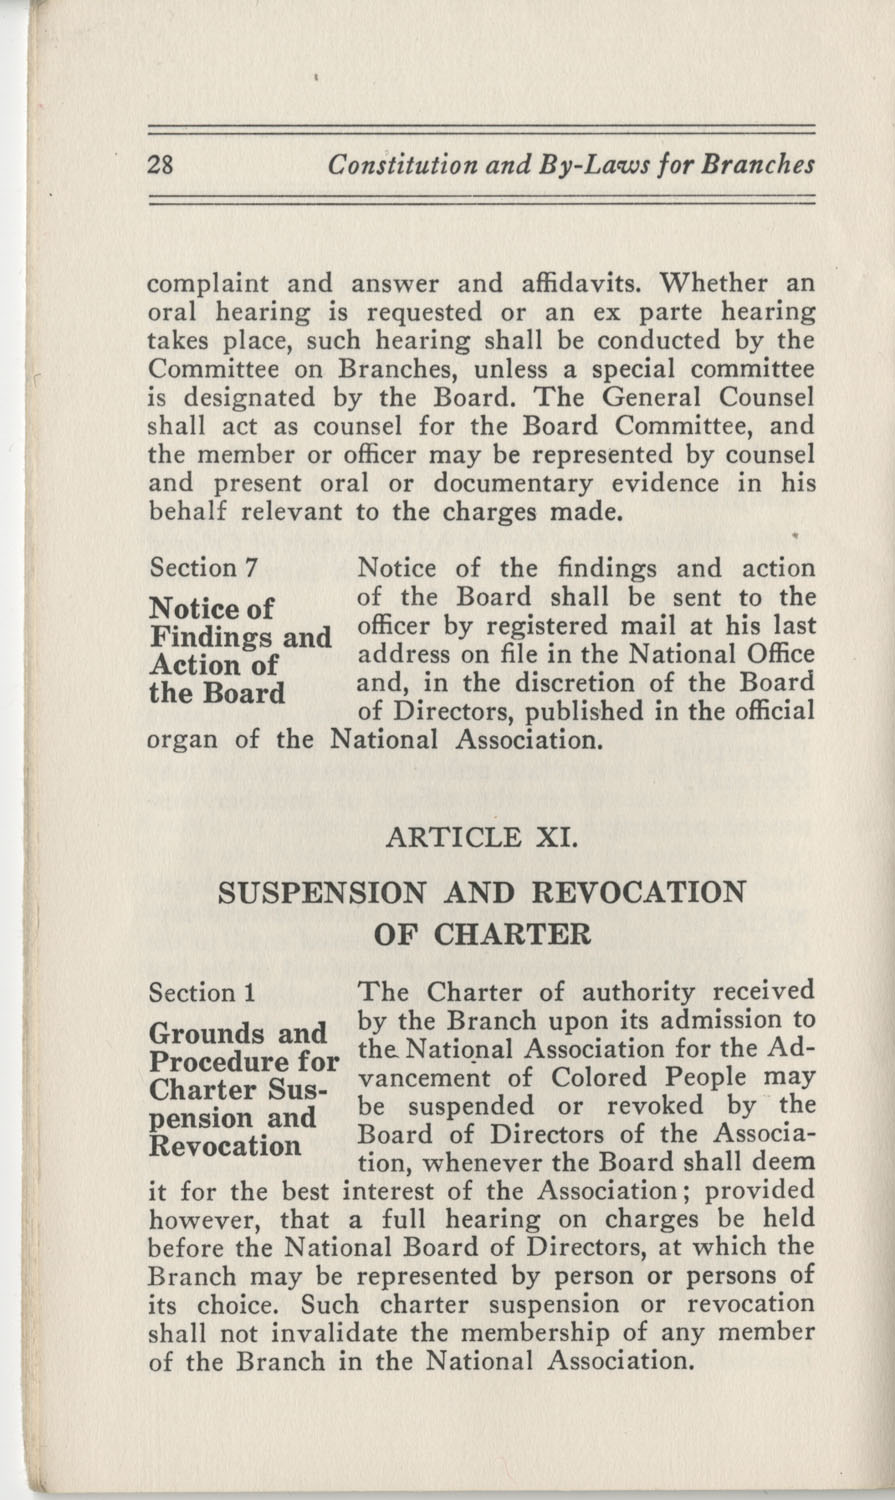 Constitutions and By-Laws, September 1960, Page 28